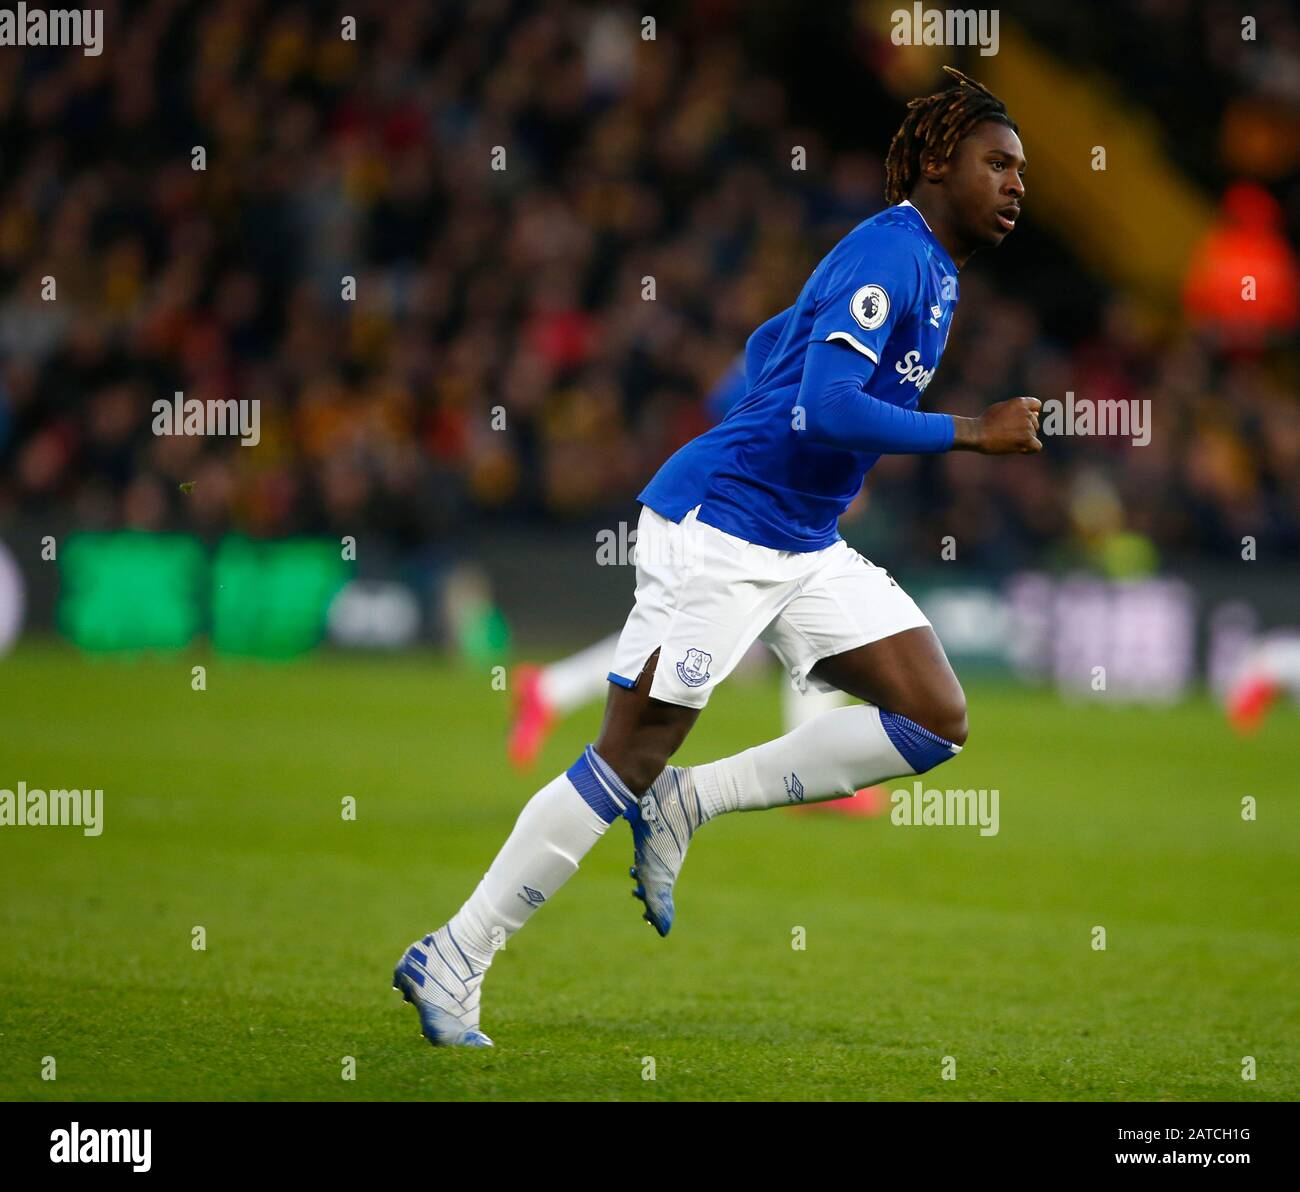 Watford Uk 01st Feb 2020 Everton S Moise Kean During Premier League Match Between Watford And Everton On January 01 2020 At Vicarage Road Stadium Watford England Credit Cal Sport Media Alamy Live News